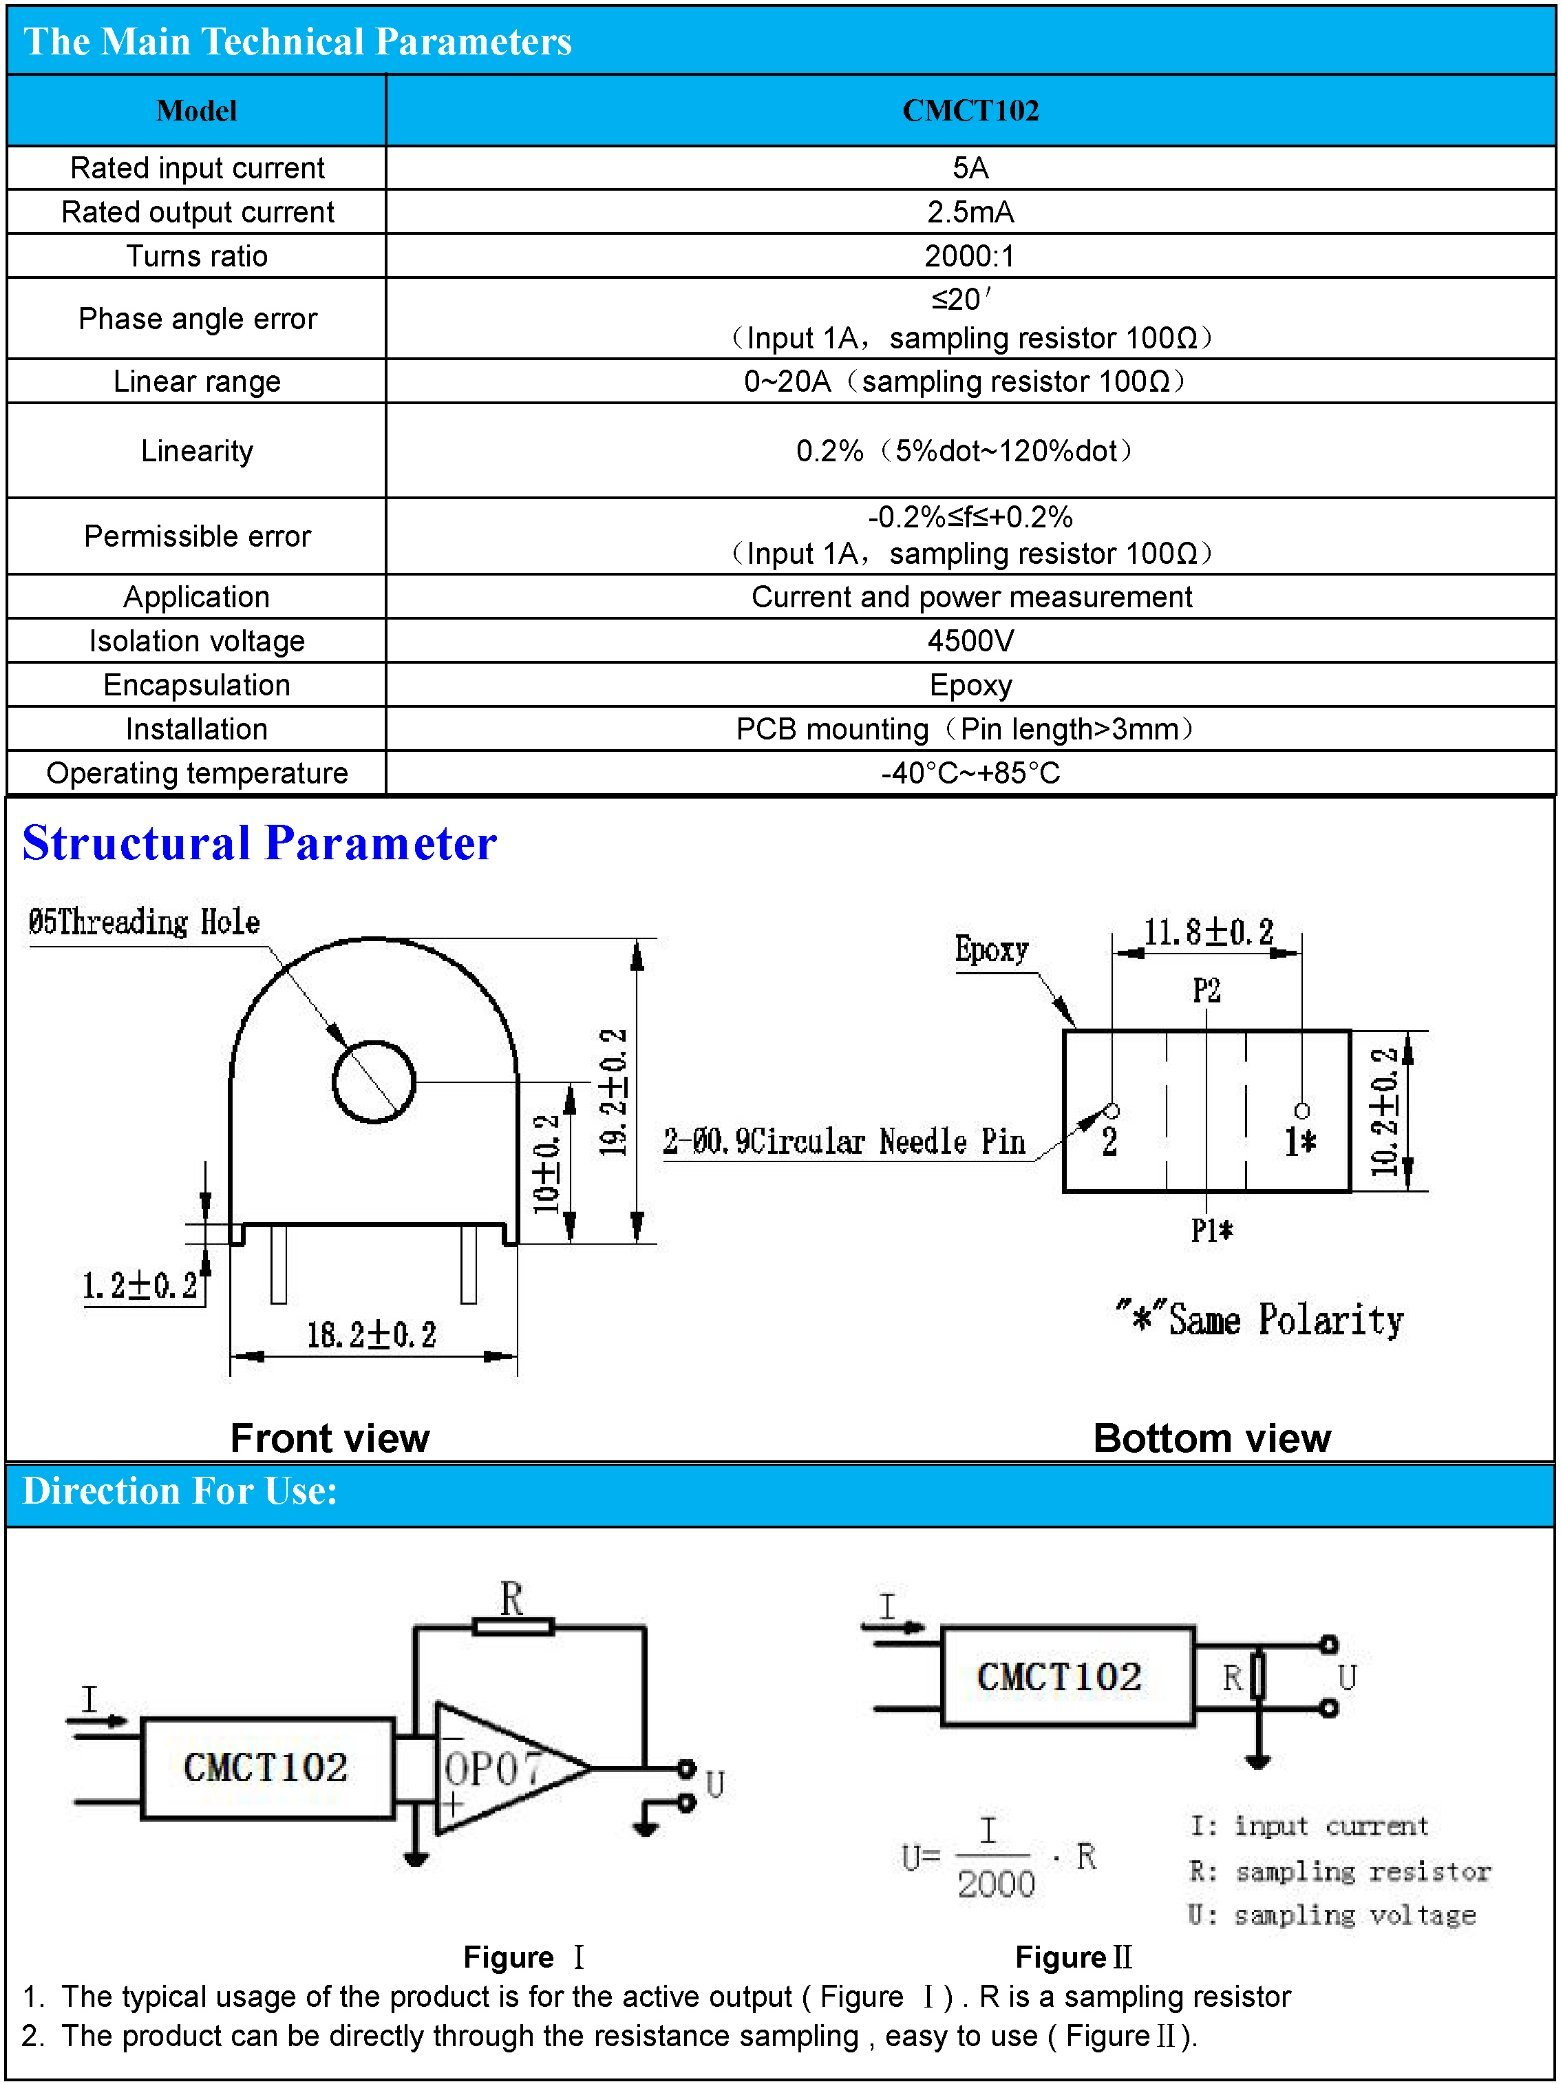 Current Transformer for Current and Power Measurement